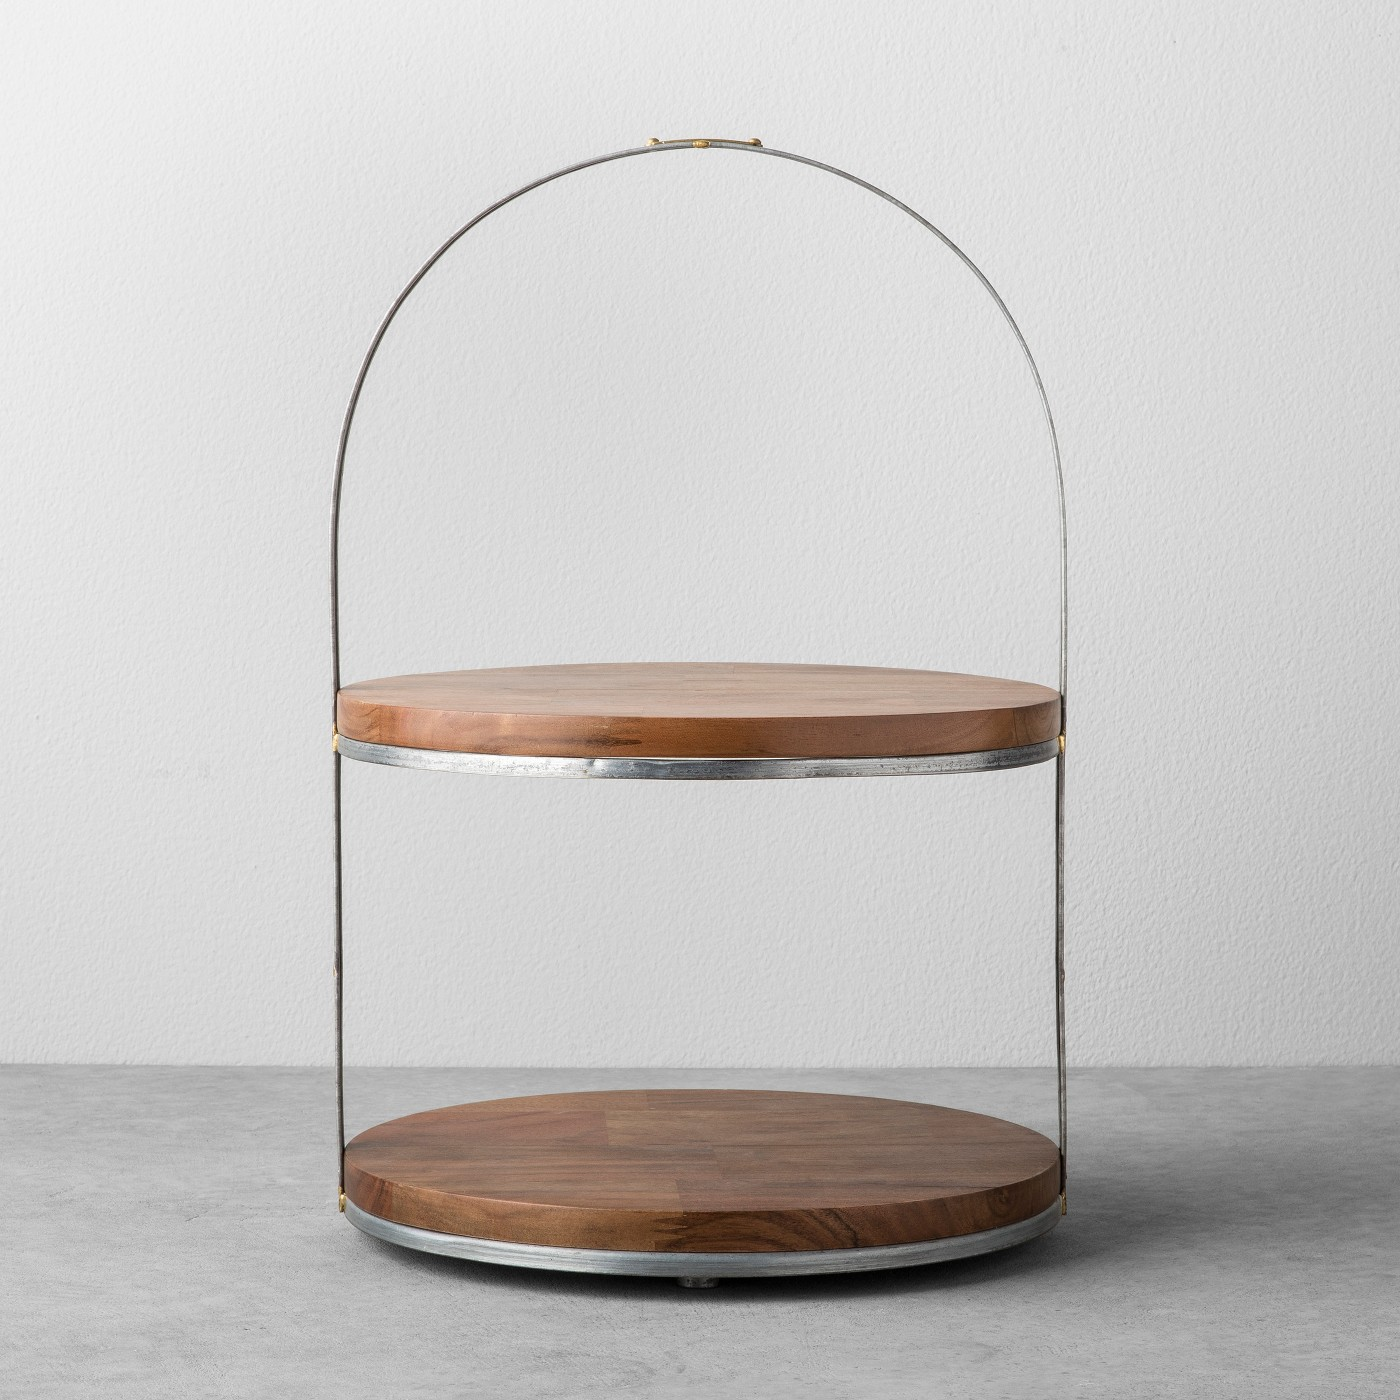 Two-tier wooden and metal cake stand